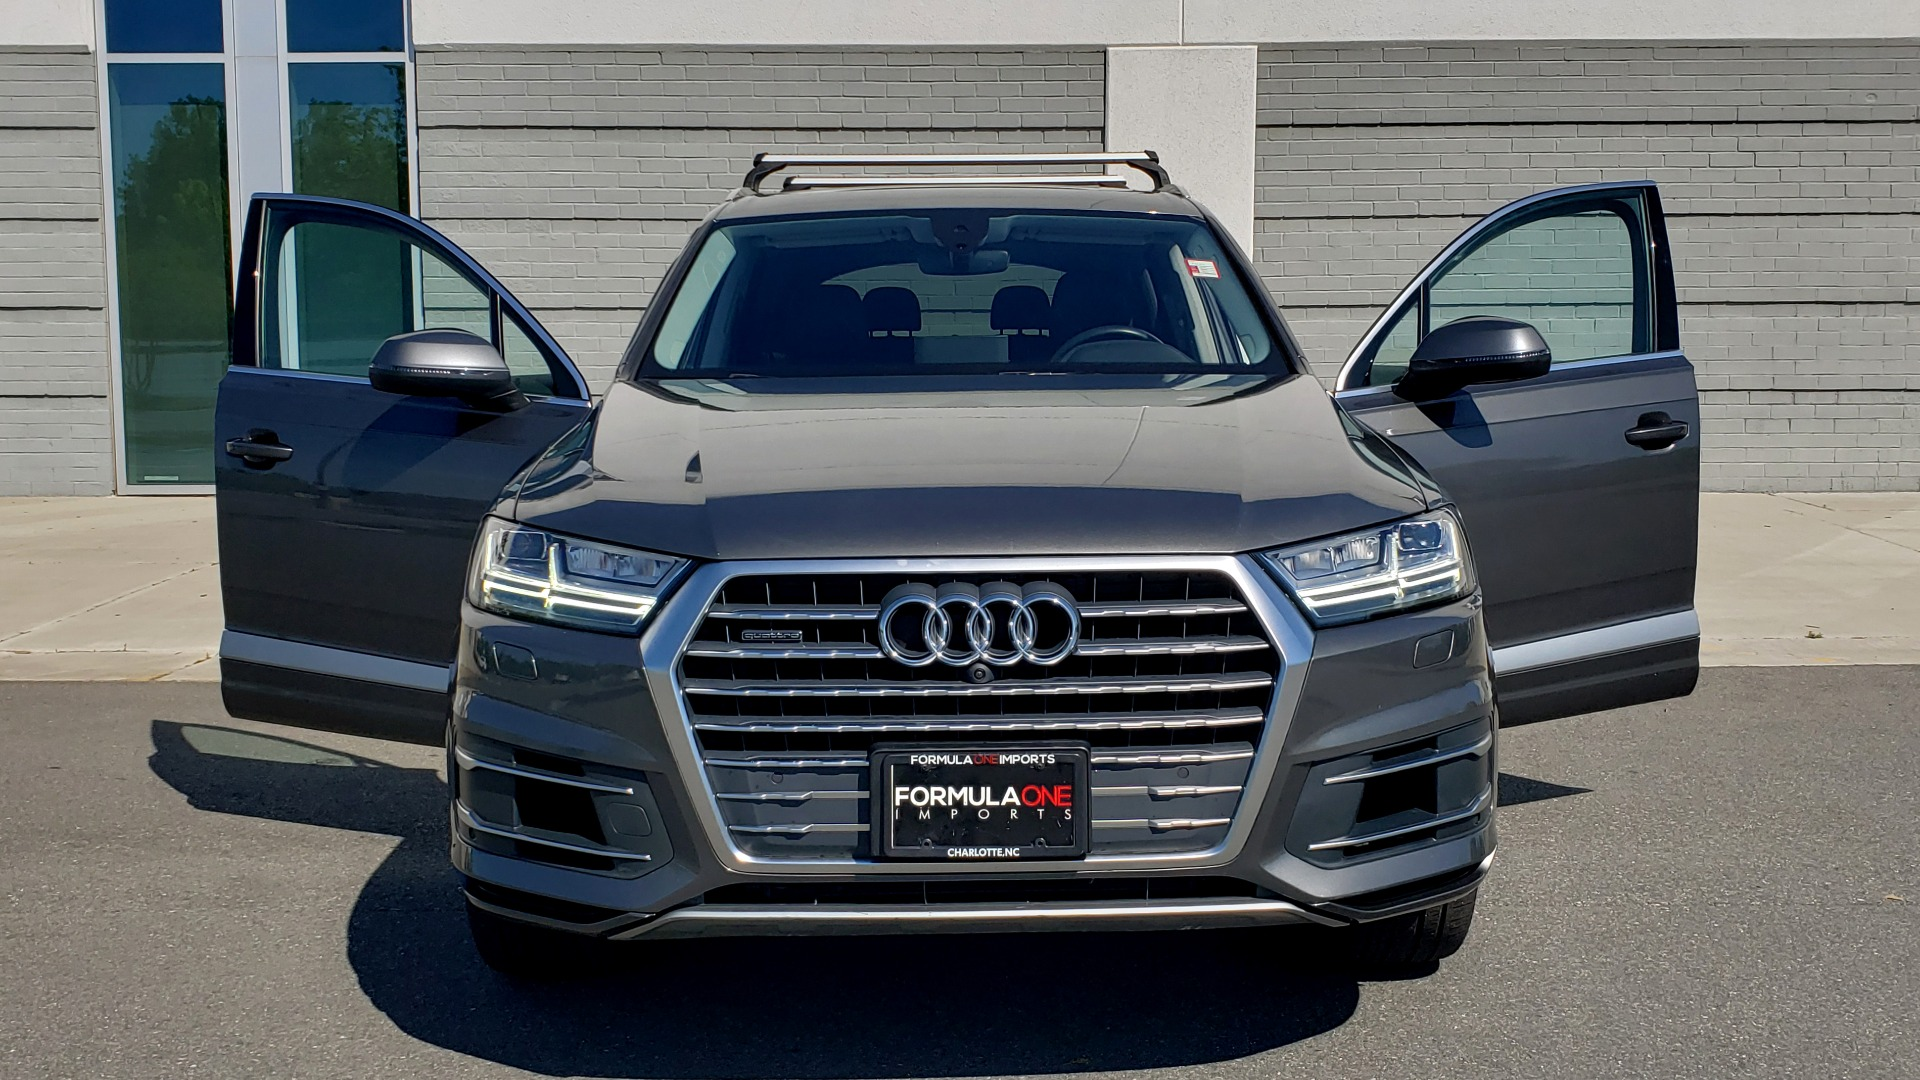 Used 2018 Audi Q7 PREMIUM PLUS TIPTRONIC / NAV / SUNROOF / VISION PKG / CLD WTHR / REARVIEW for sale $44,395 at Formula Imports in Charlotte NC 28227 25